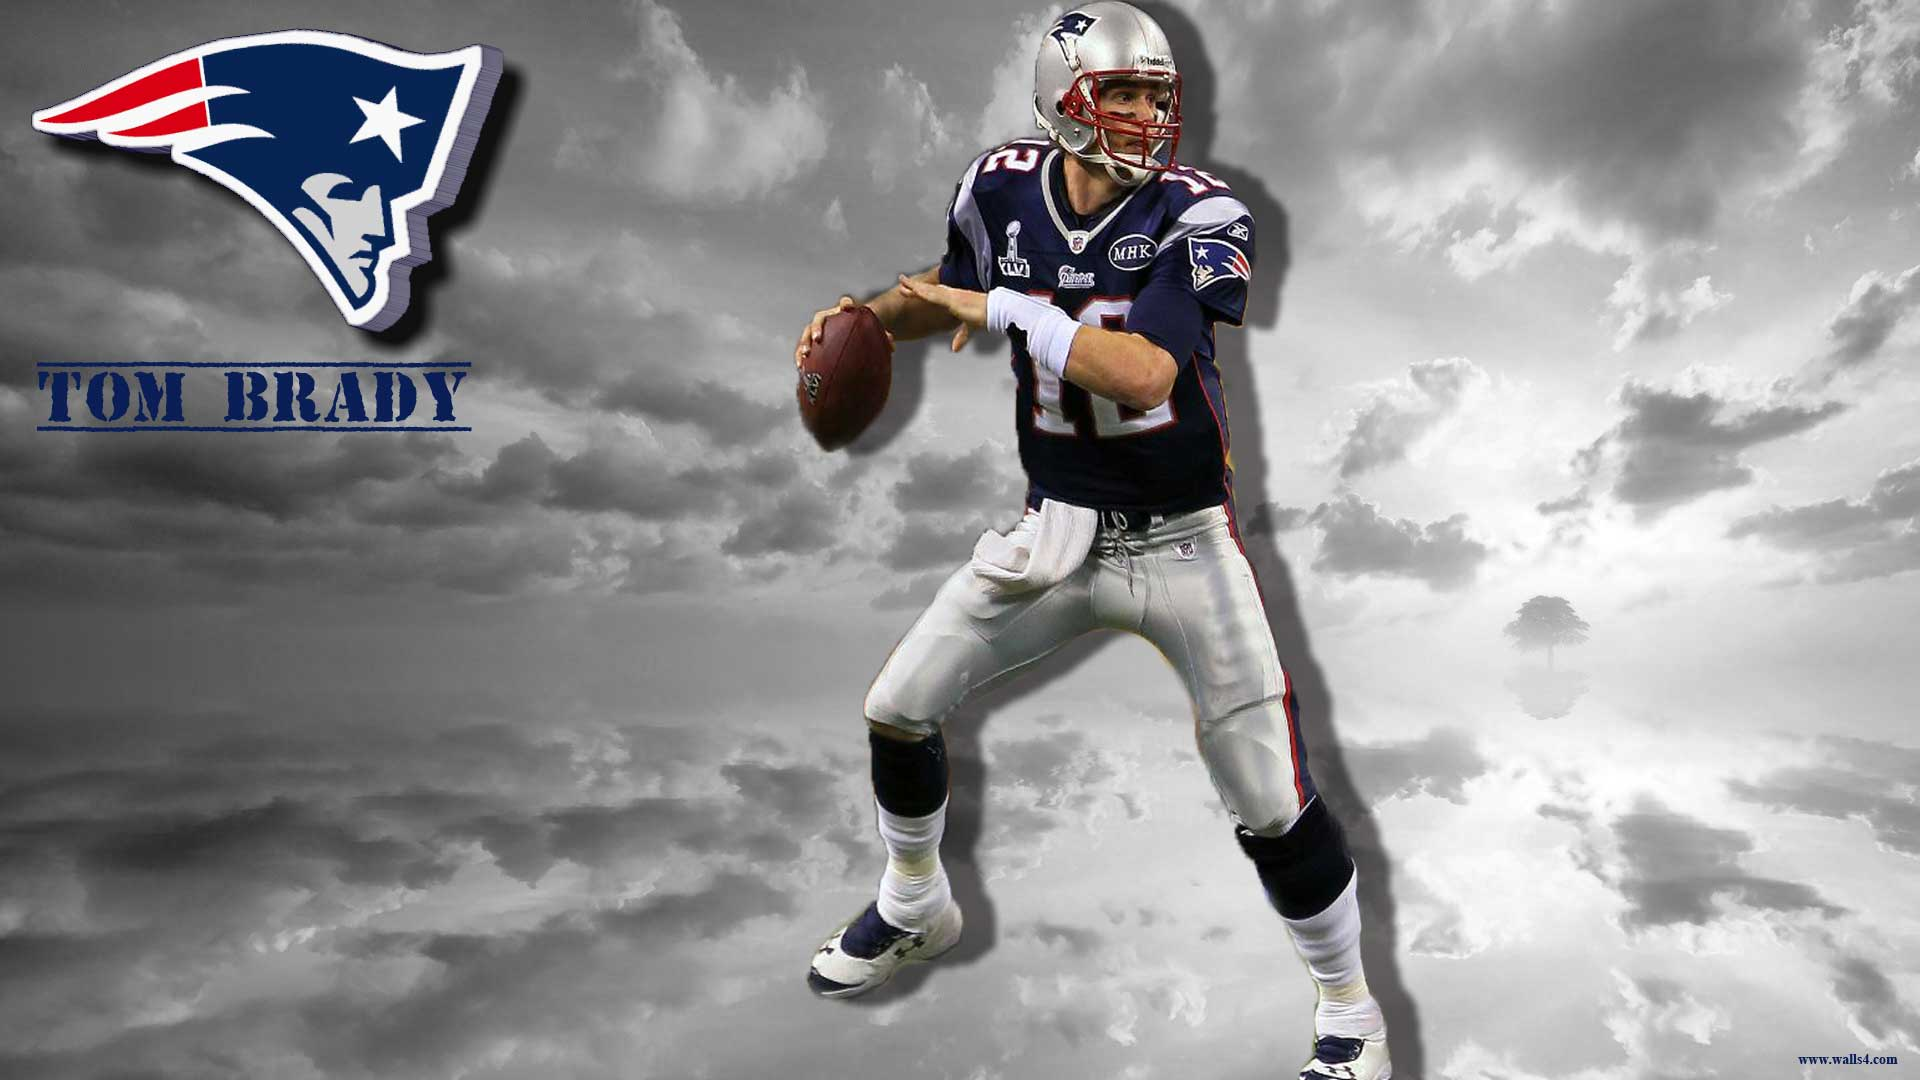 Tom Brady HD Wallpapers